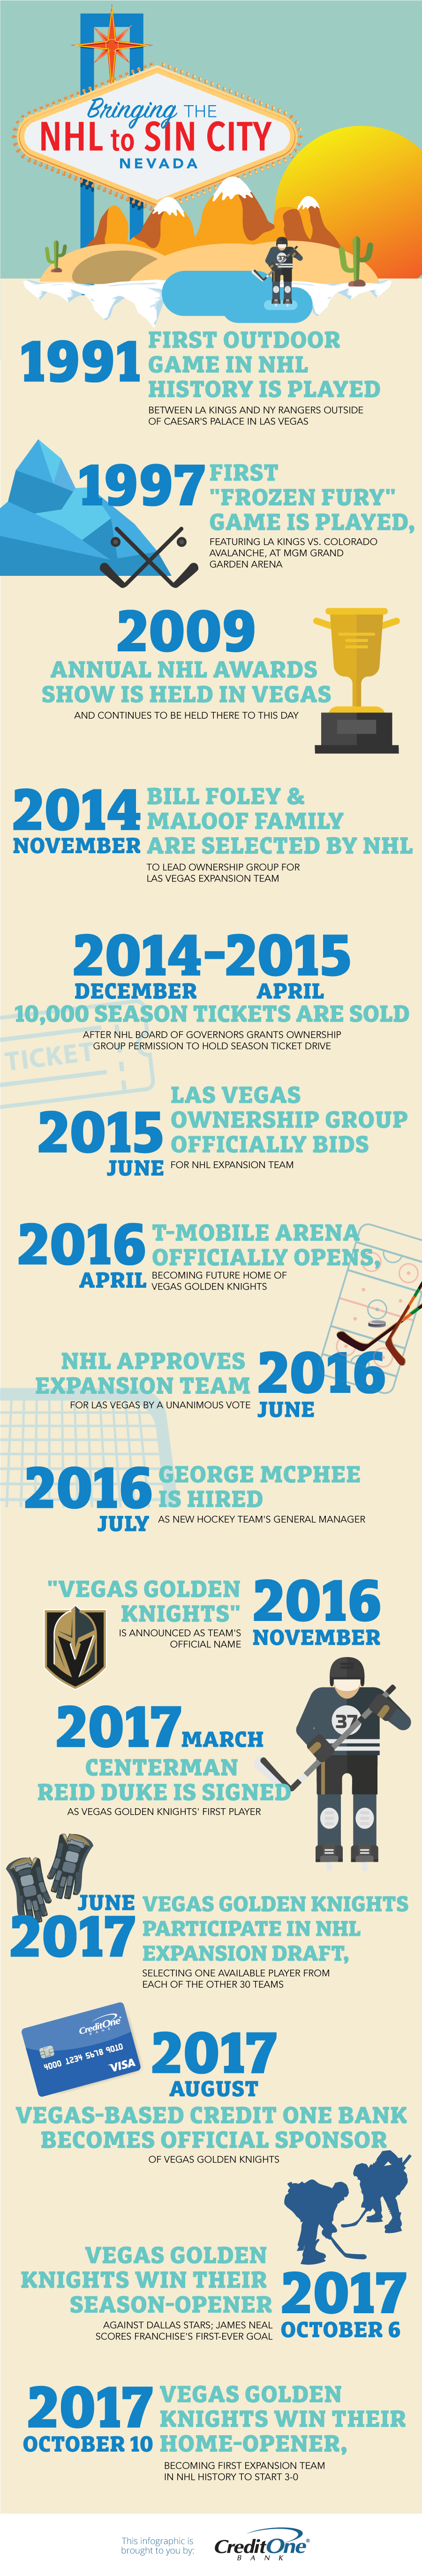 Bringing the NHL to Sin City [Infographic]